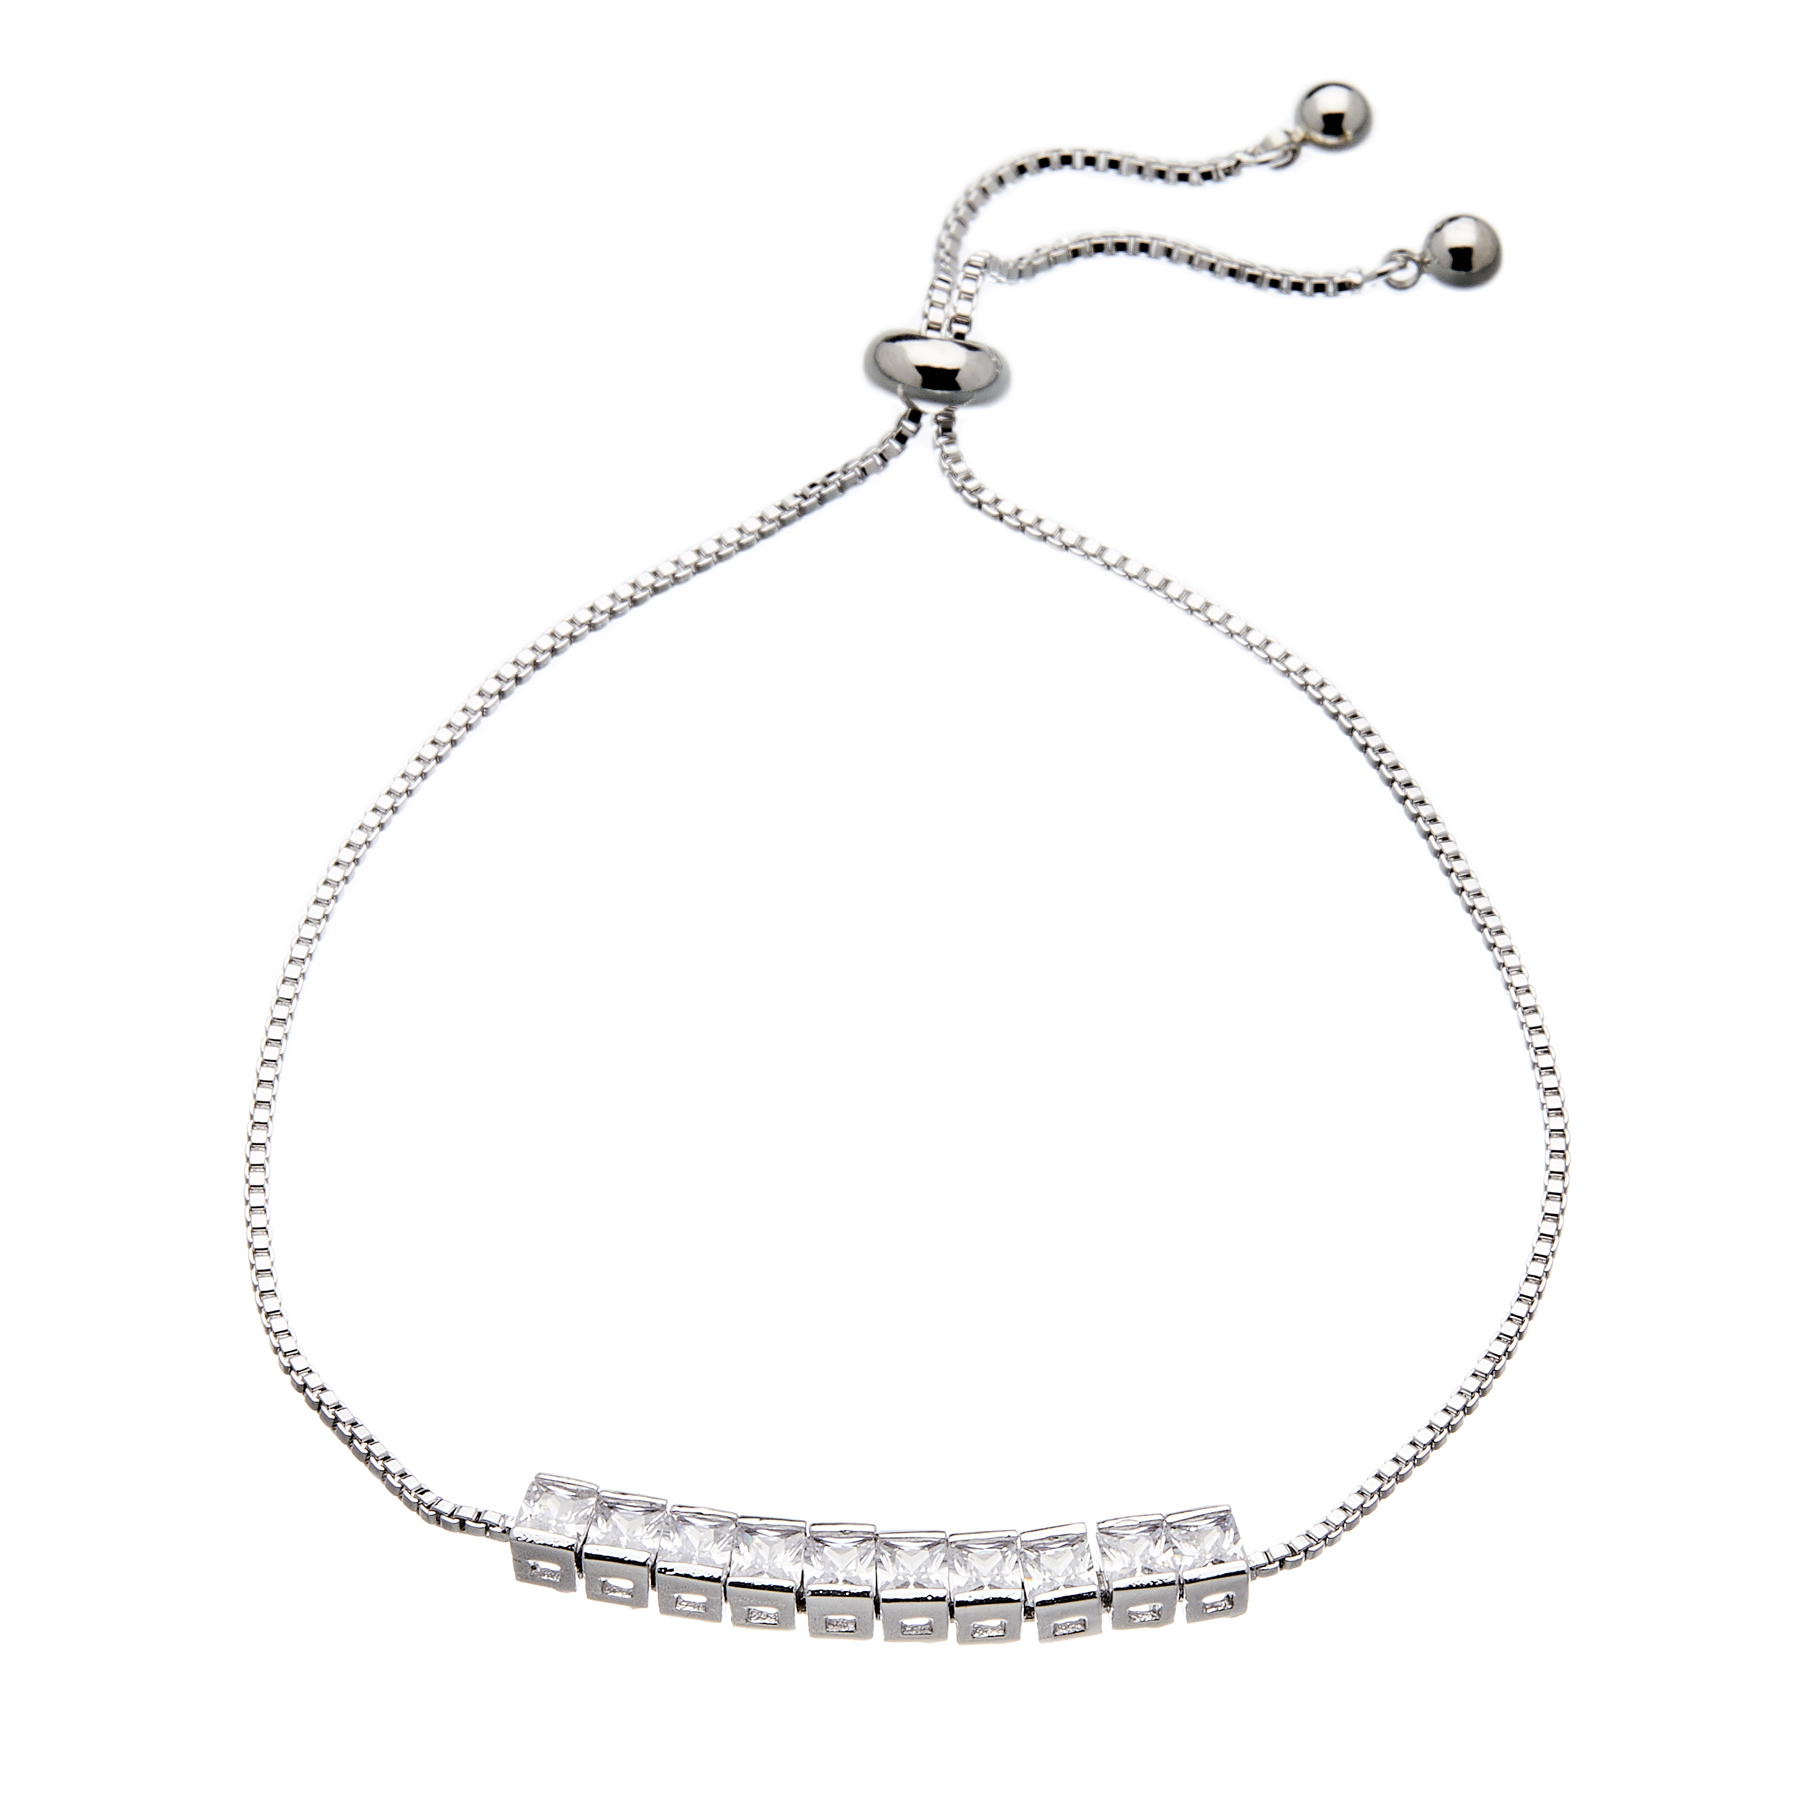 Silver Bracelet with an adjustable sliding clasp and sparkling clear crystals - Neris